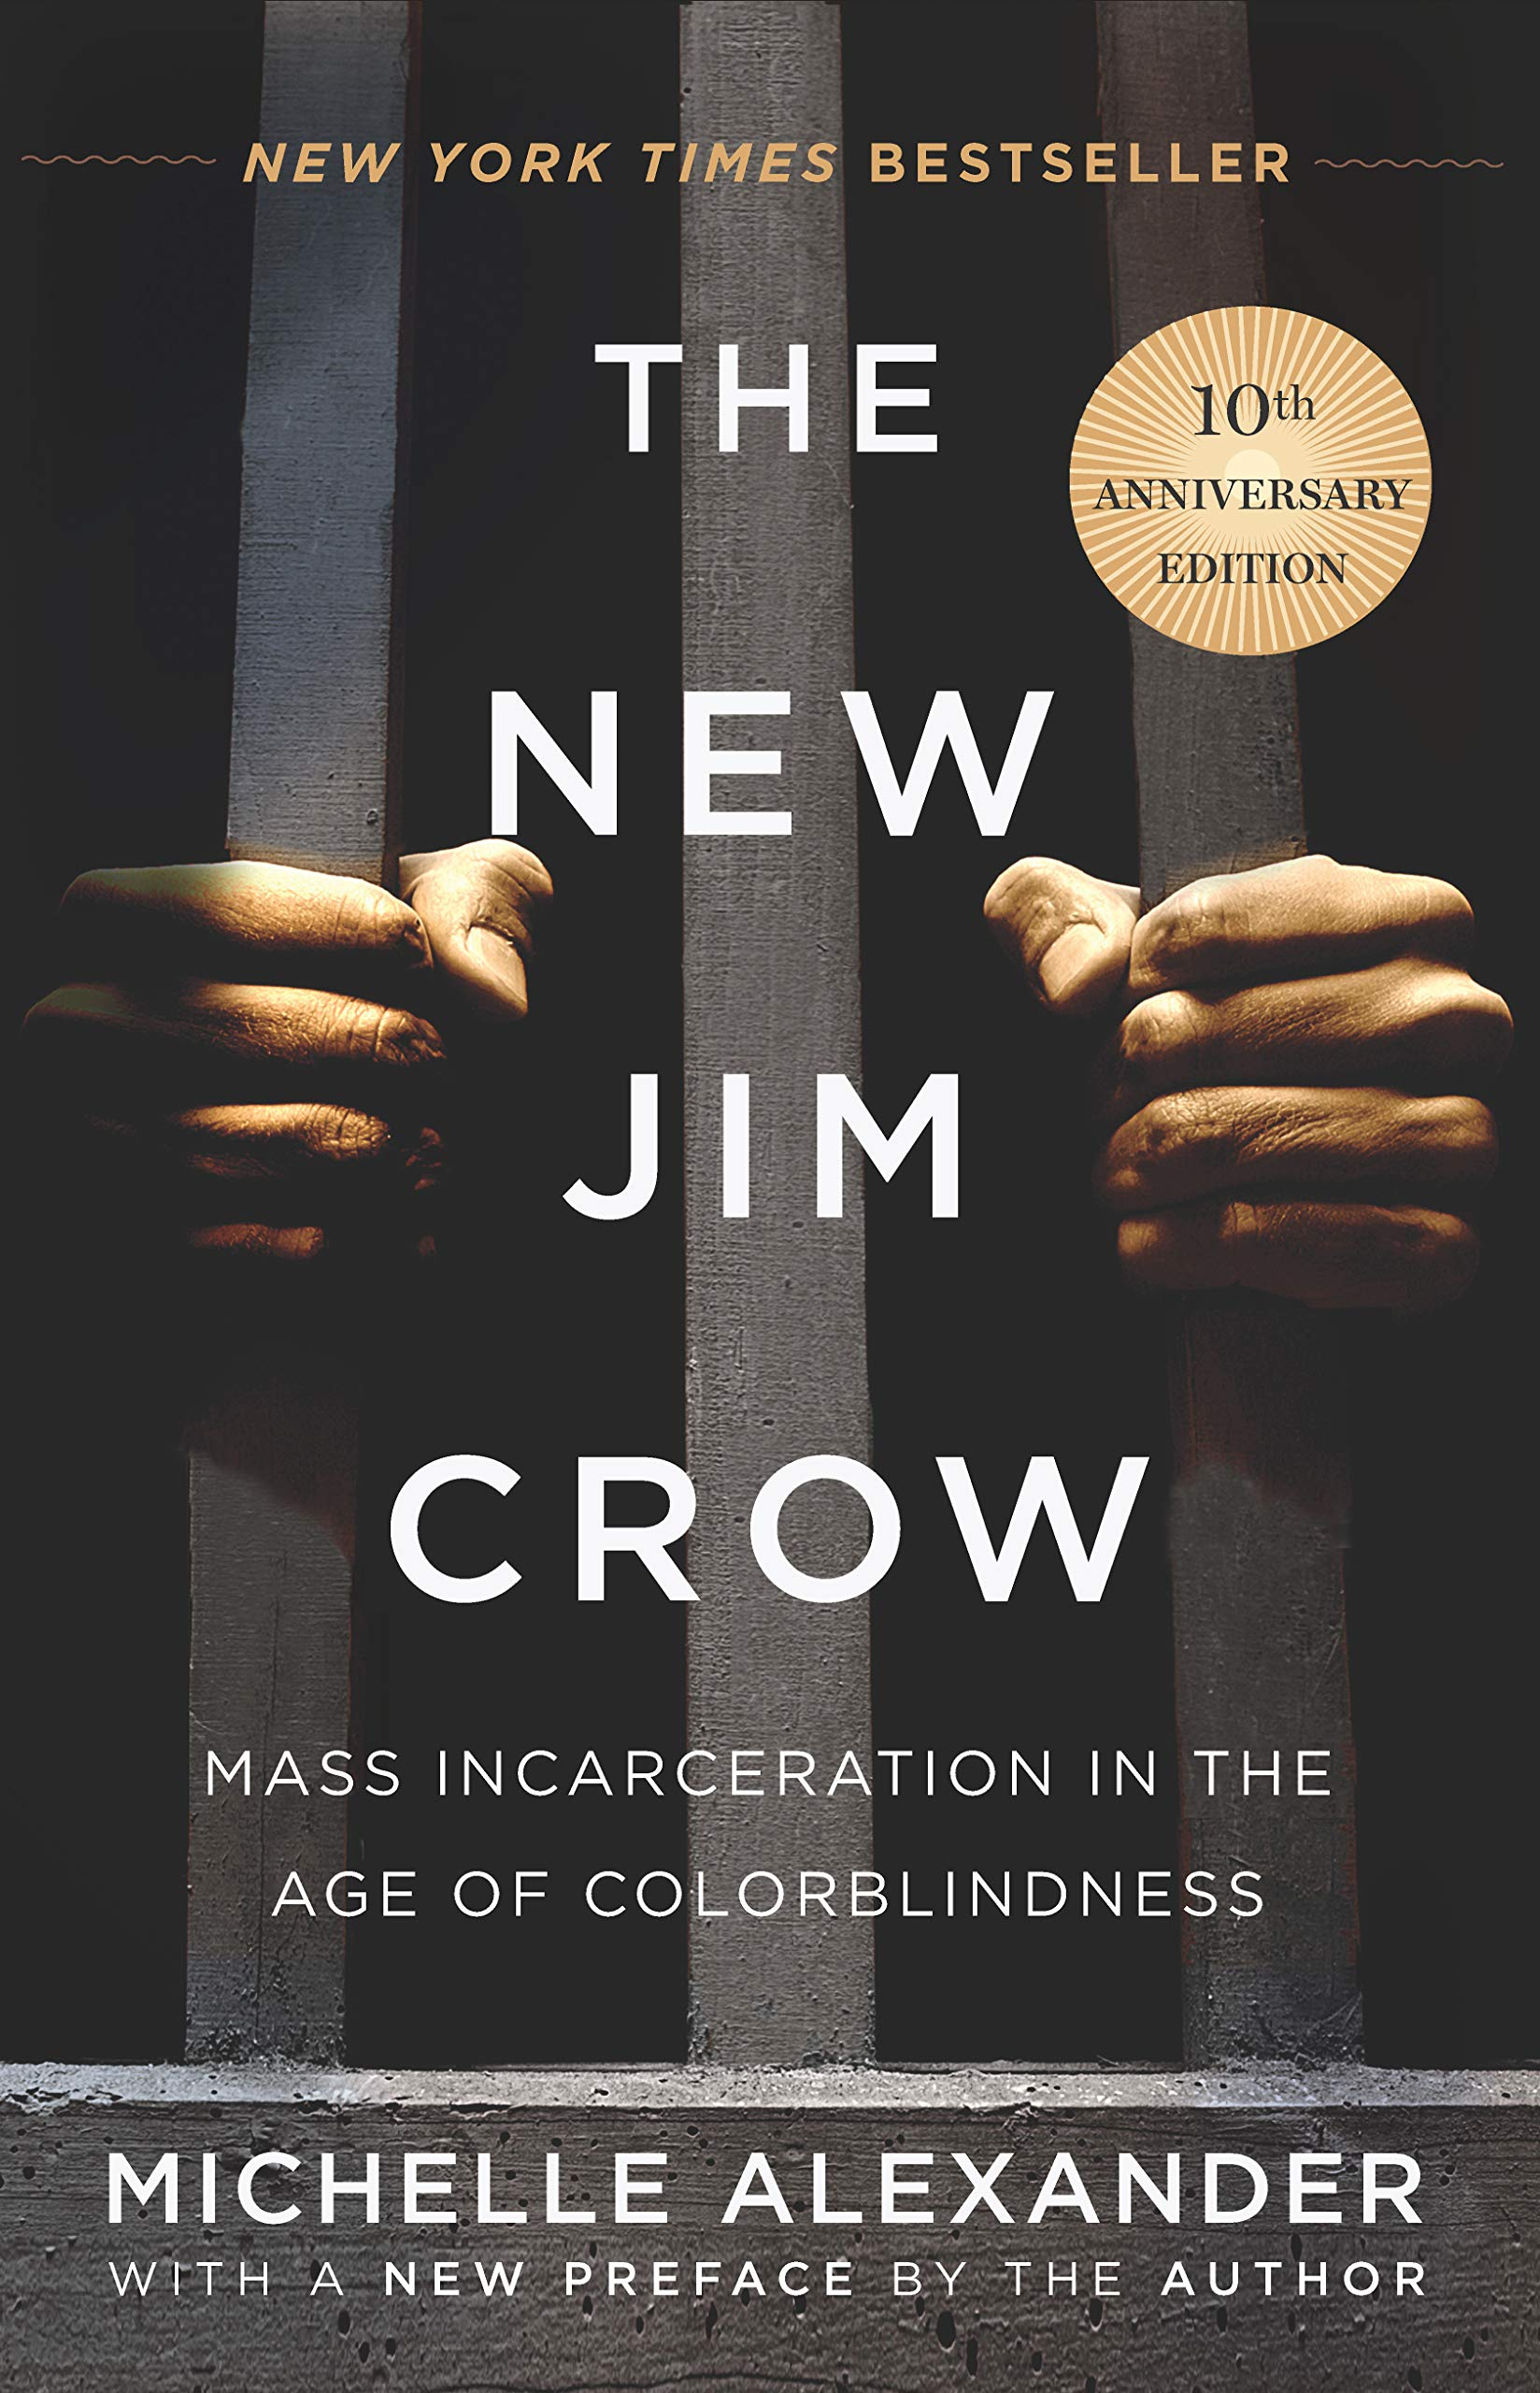 Cover of The New Jim Crow: Mass Incarceration in the Age of Colorblindness by Michelle Alexander